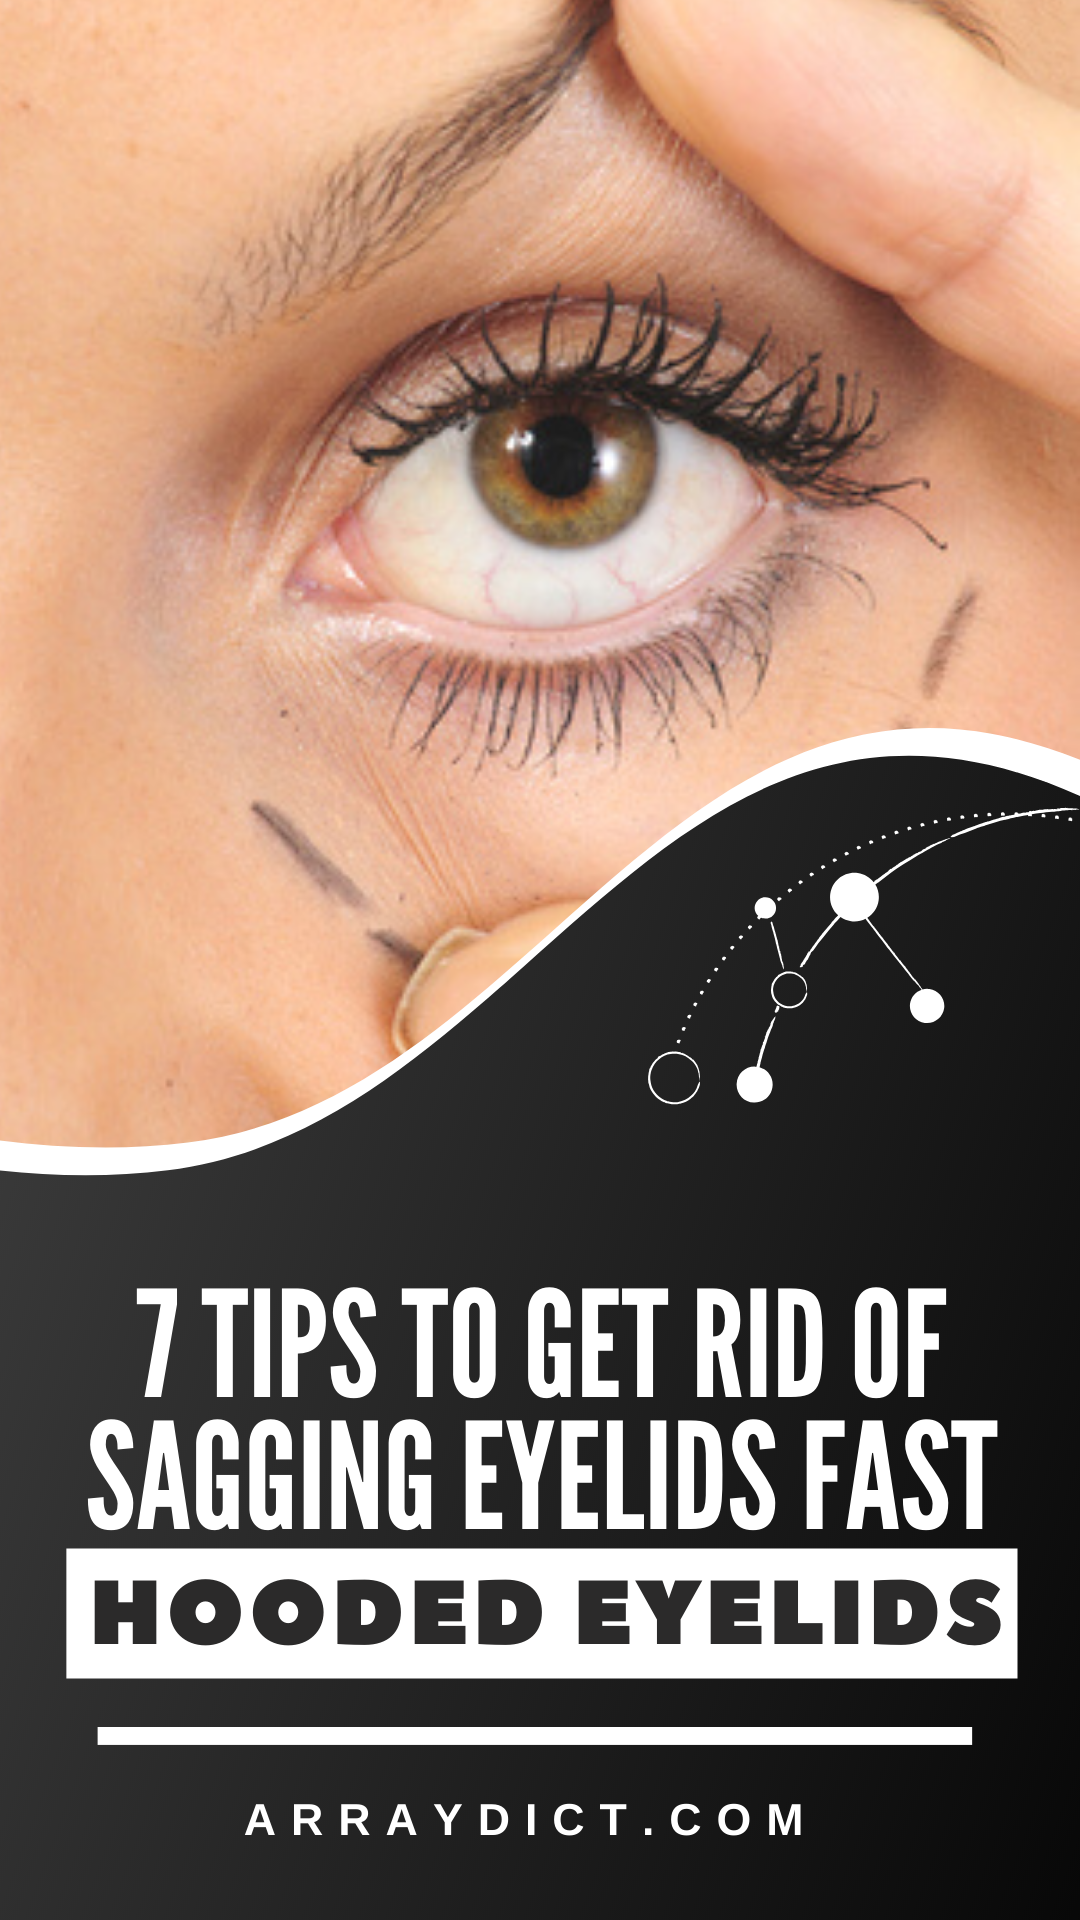 Eye Lift 7 Ways to Get Rid of Hooded Eyelids Without